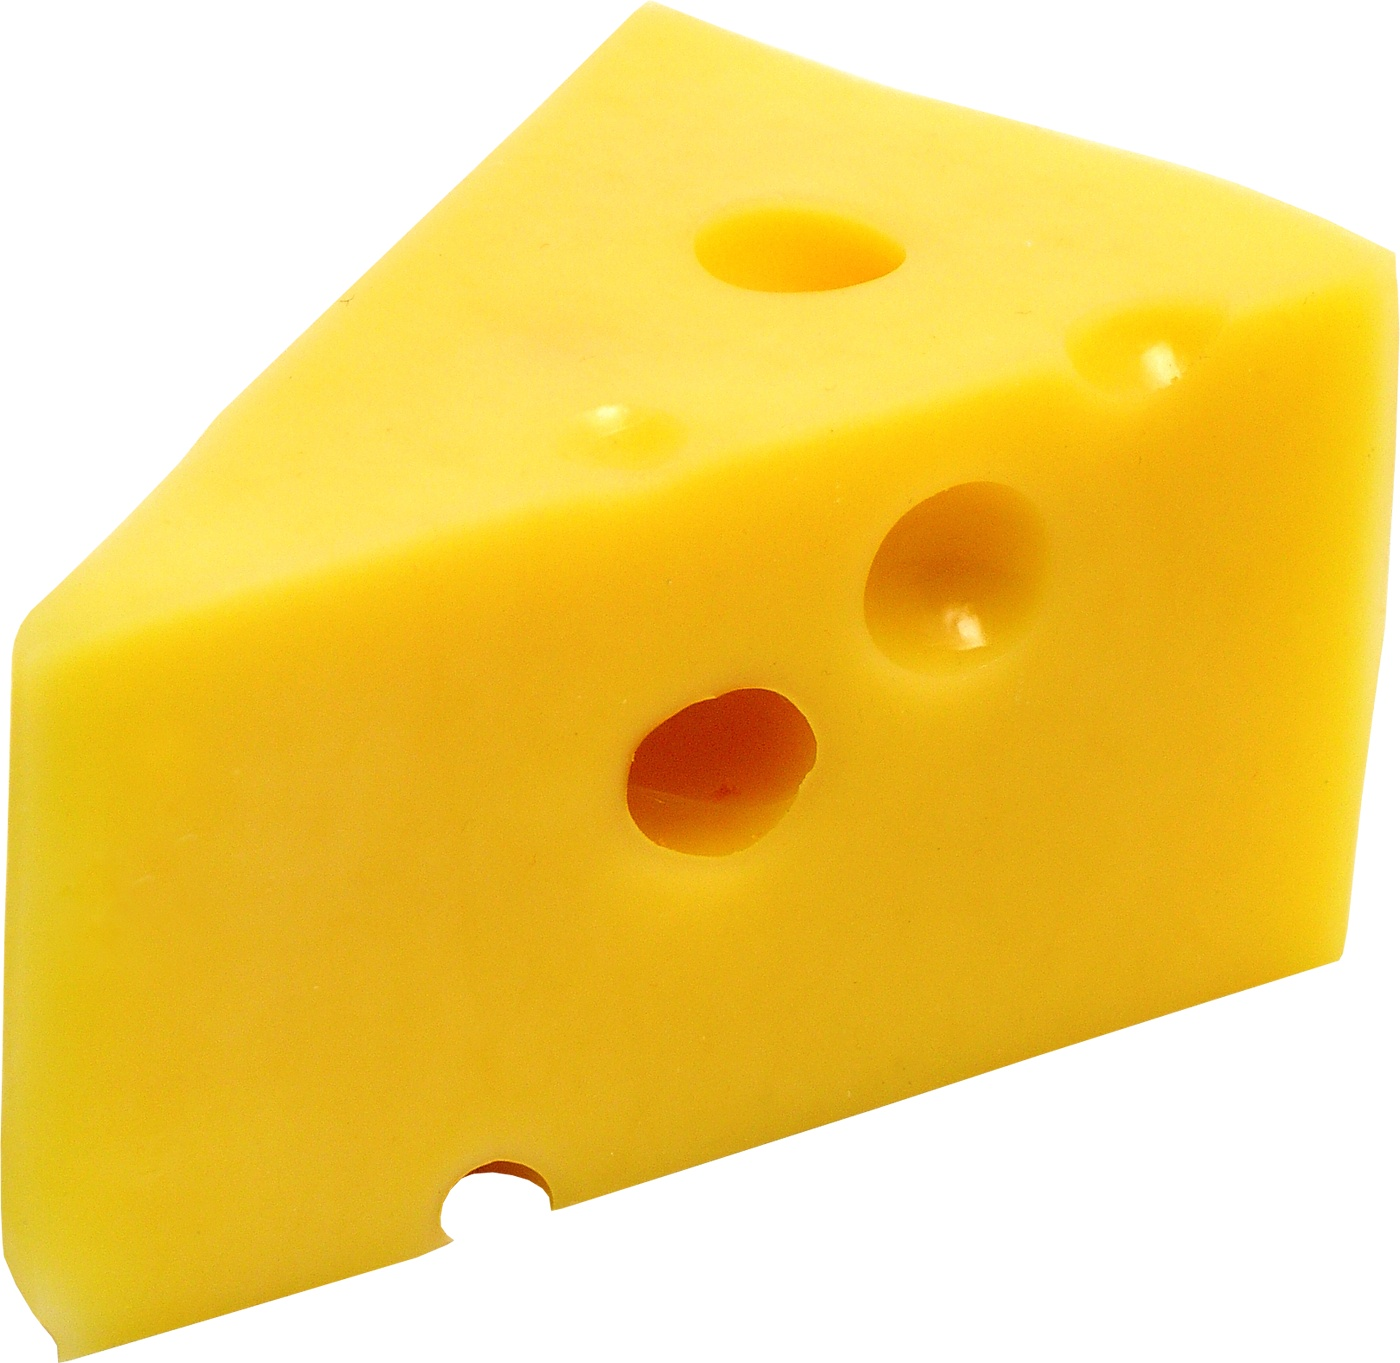 image cheese food jpg community central fandom powered by wikia